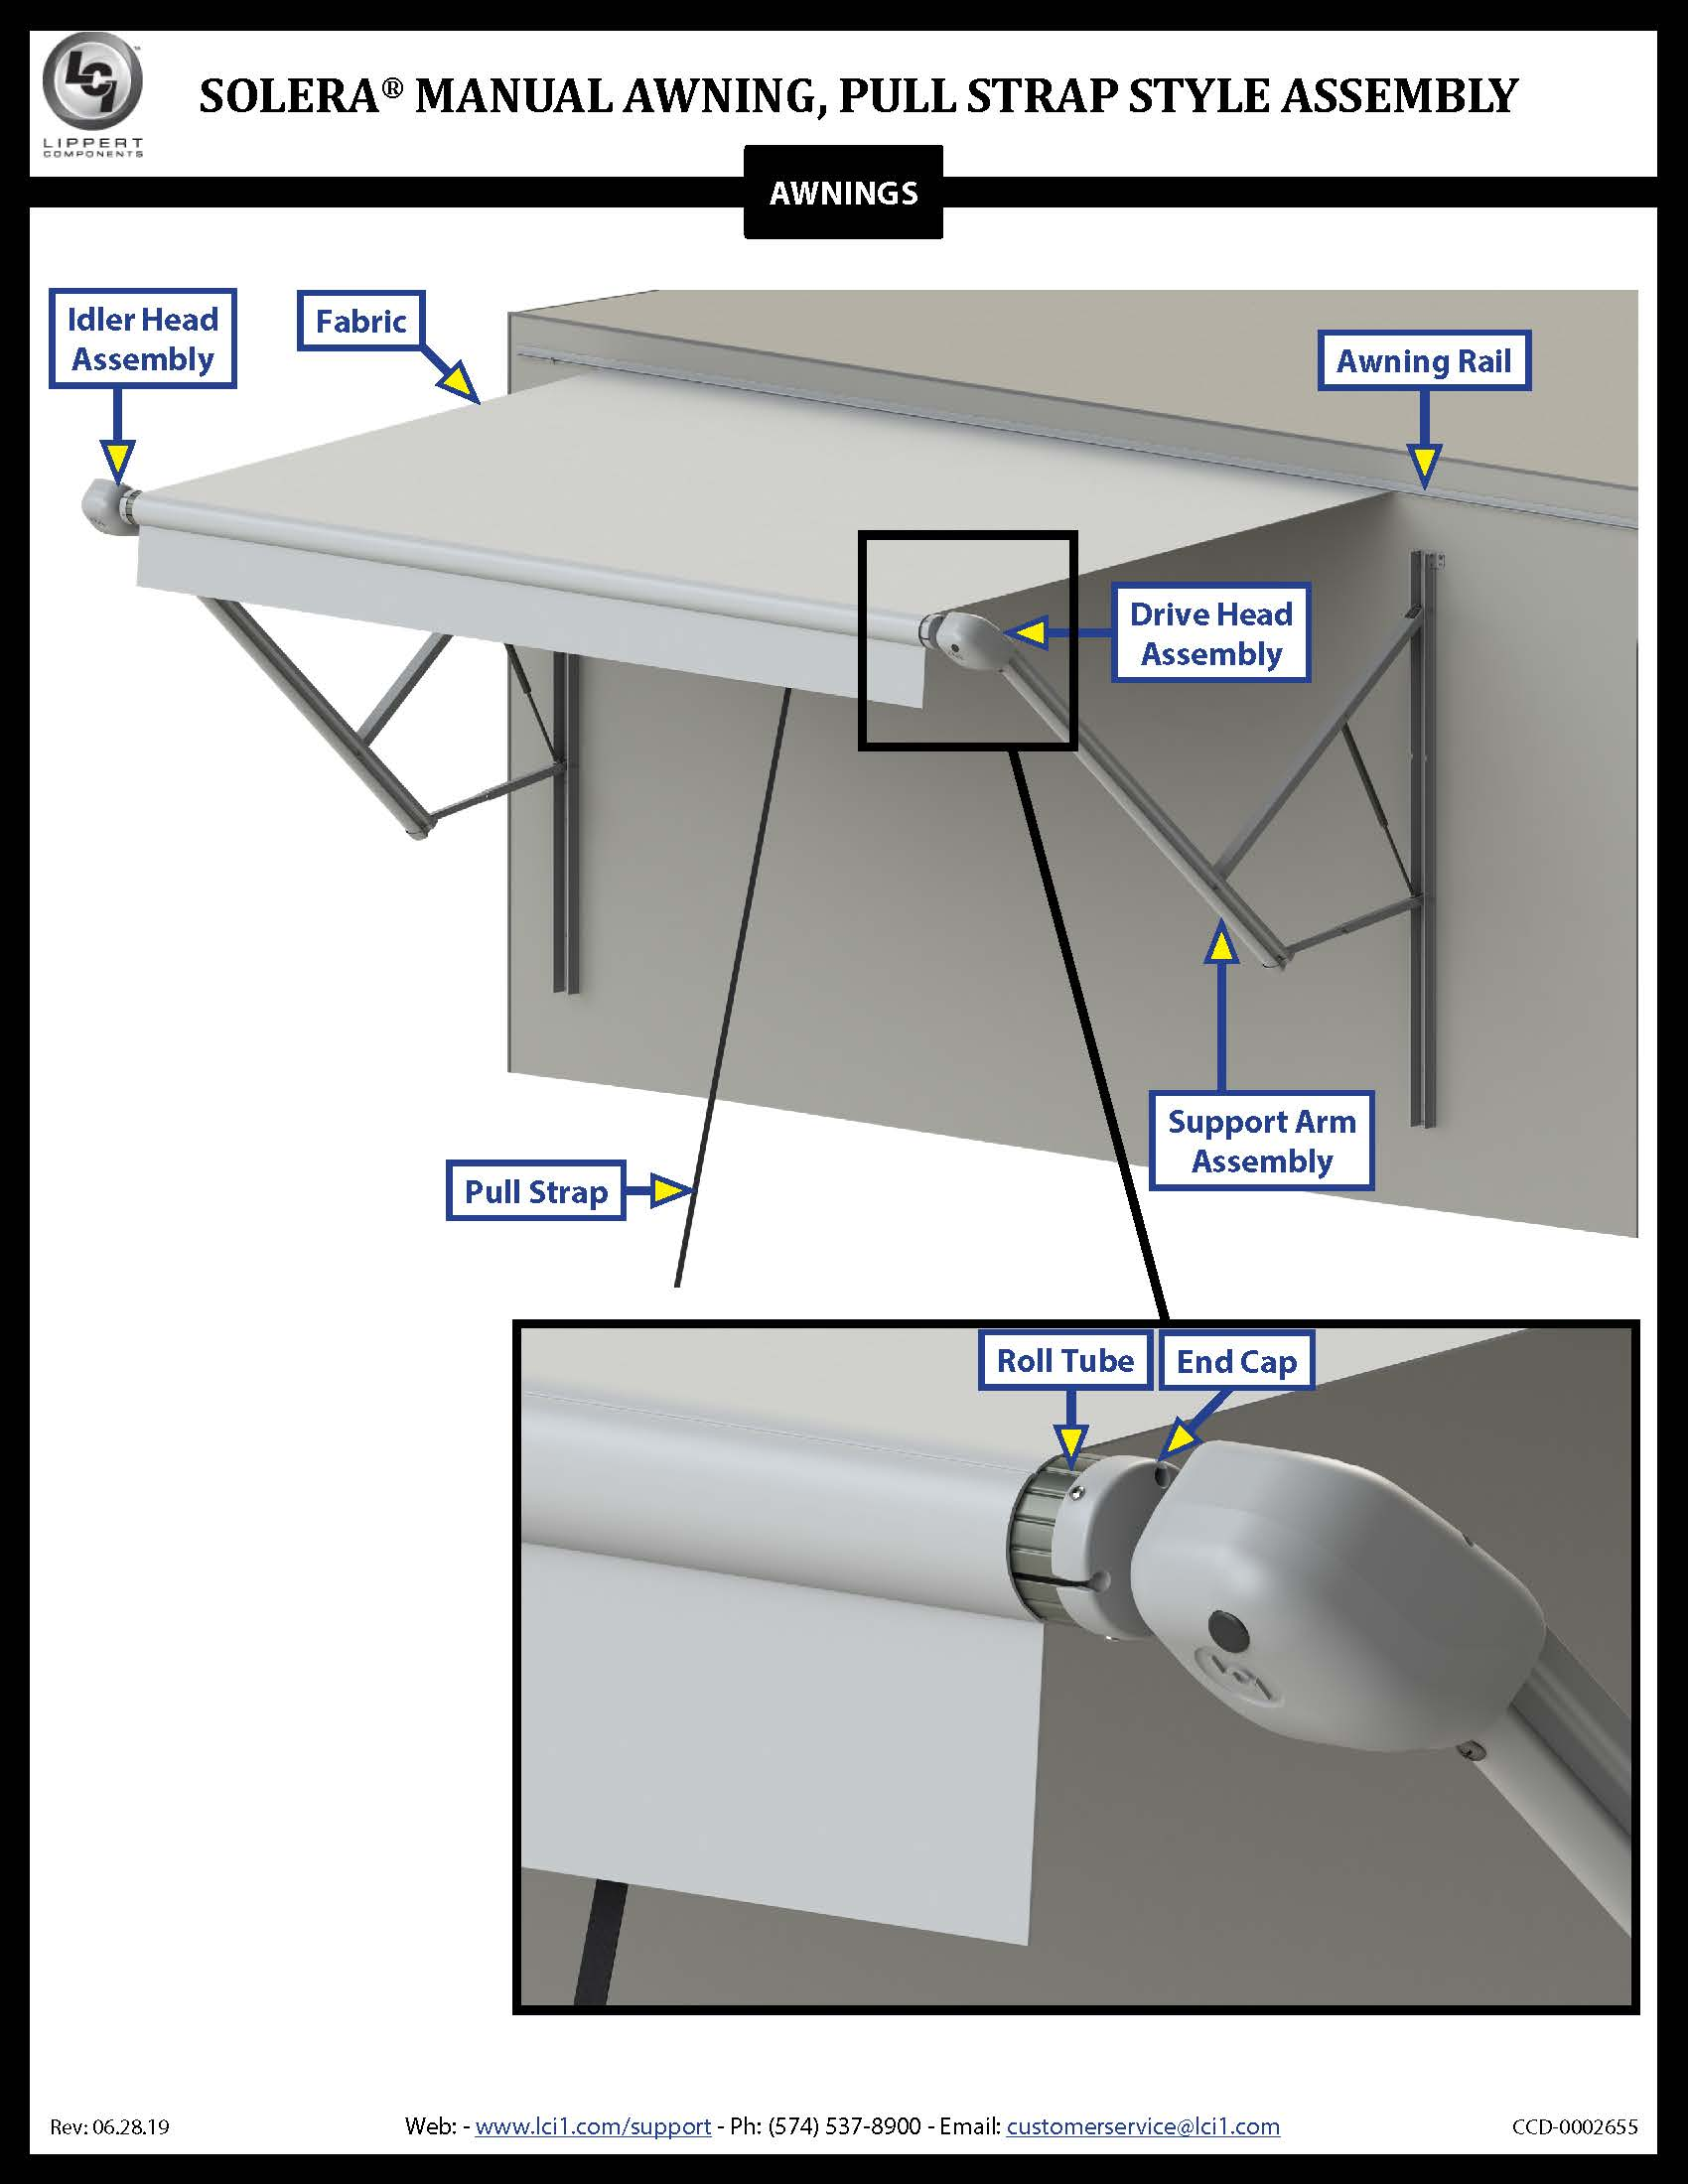 Solera® Manual Awning, Pull Strap Style Assembly